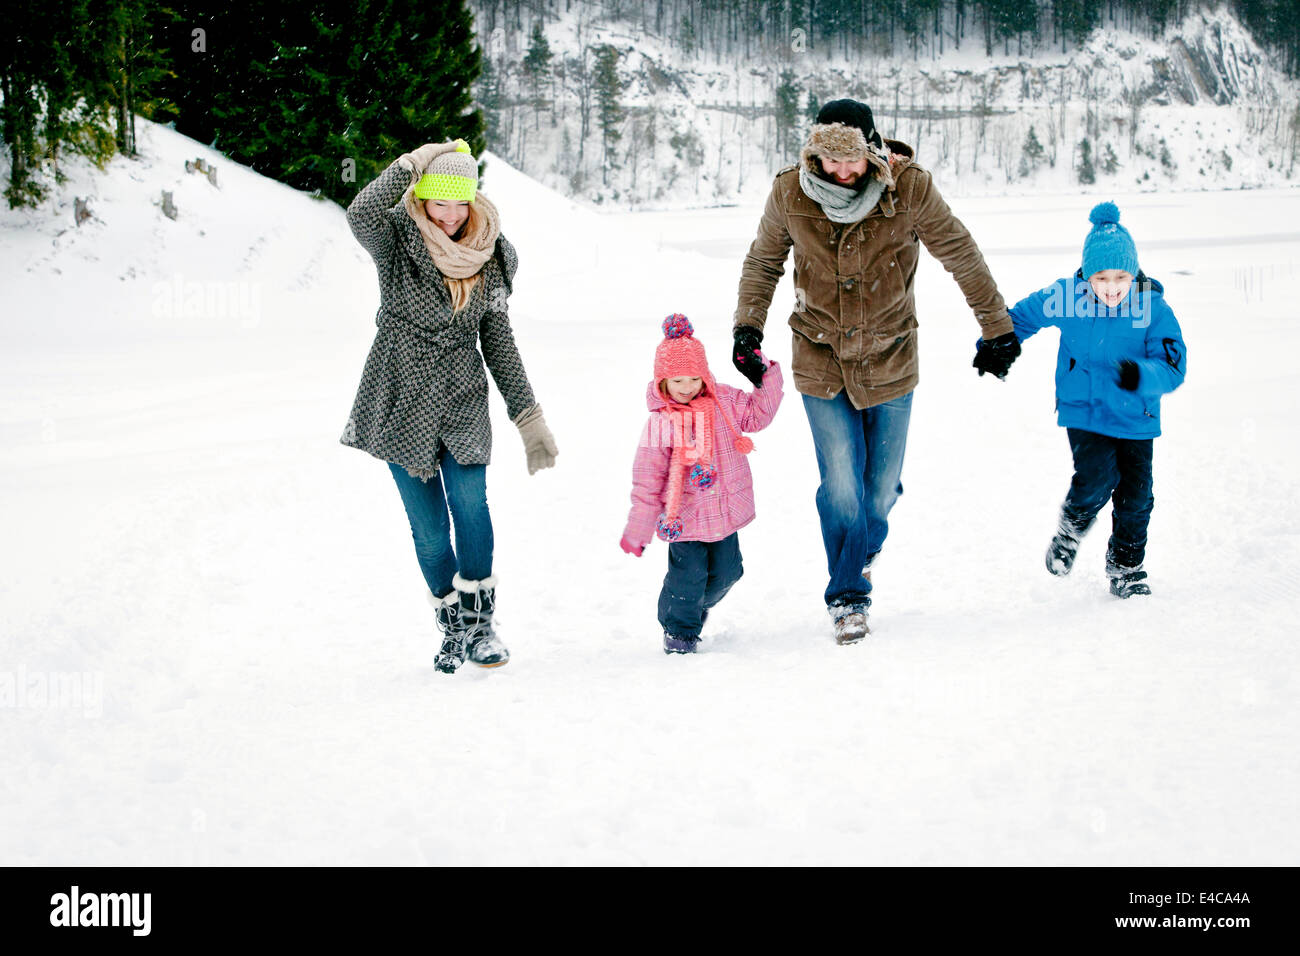 Family with two children in snow-covered landscape having fun, Bavaria, Germany - Stock Image